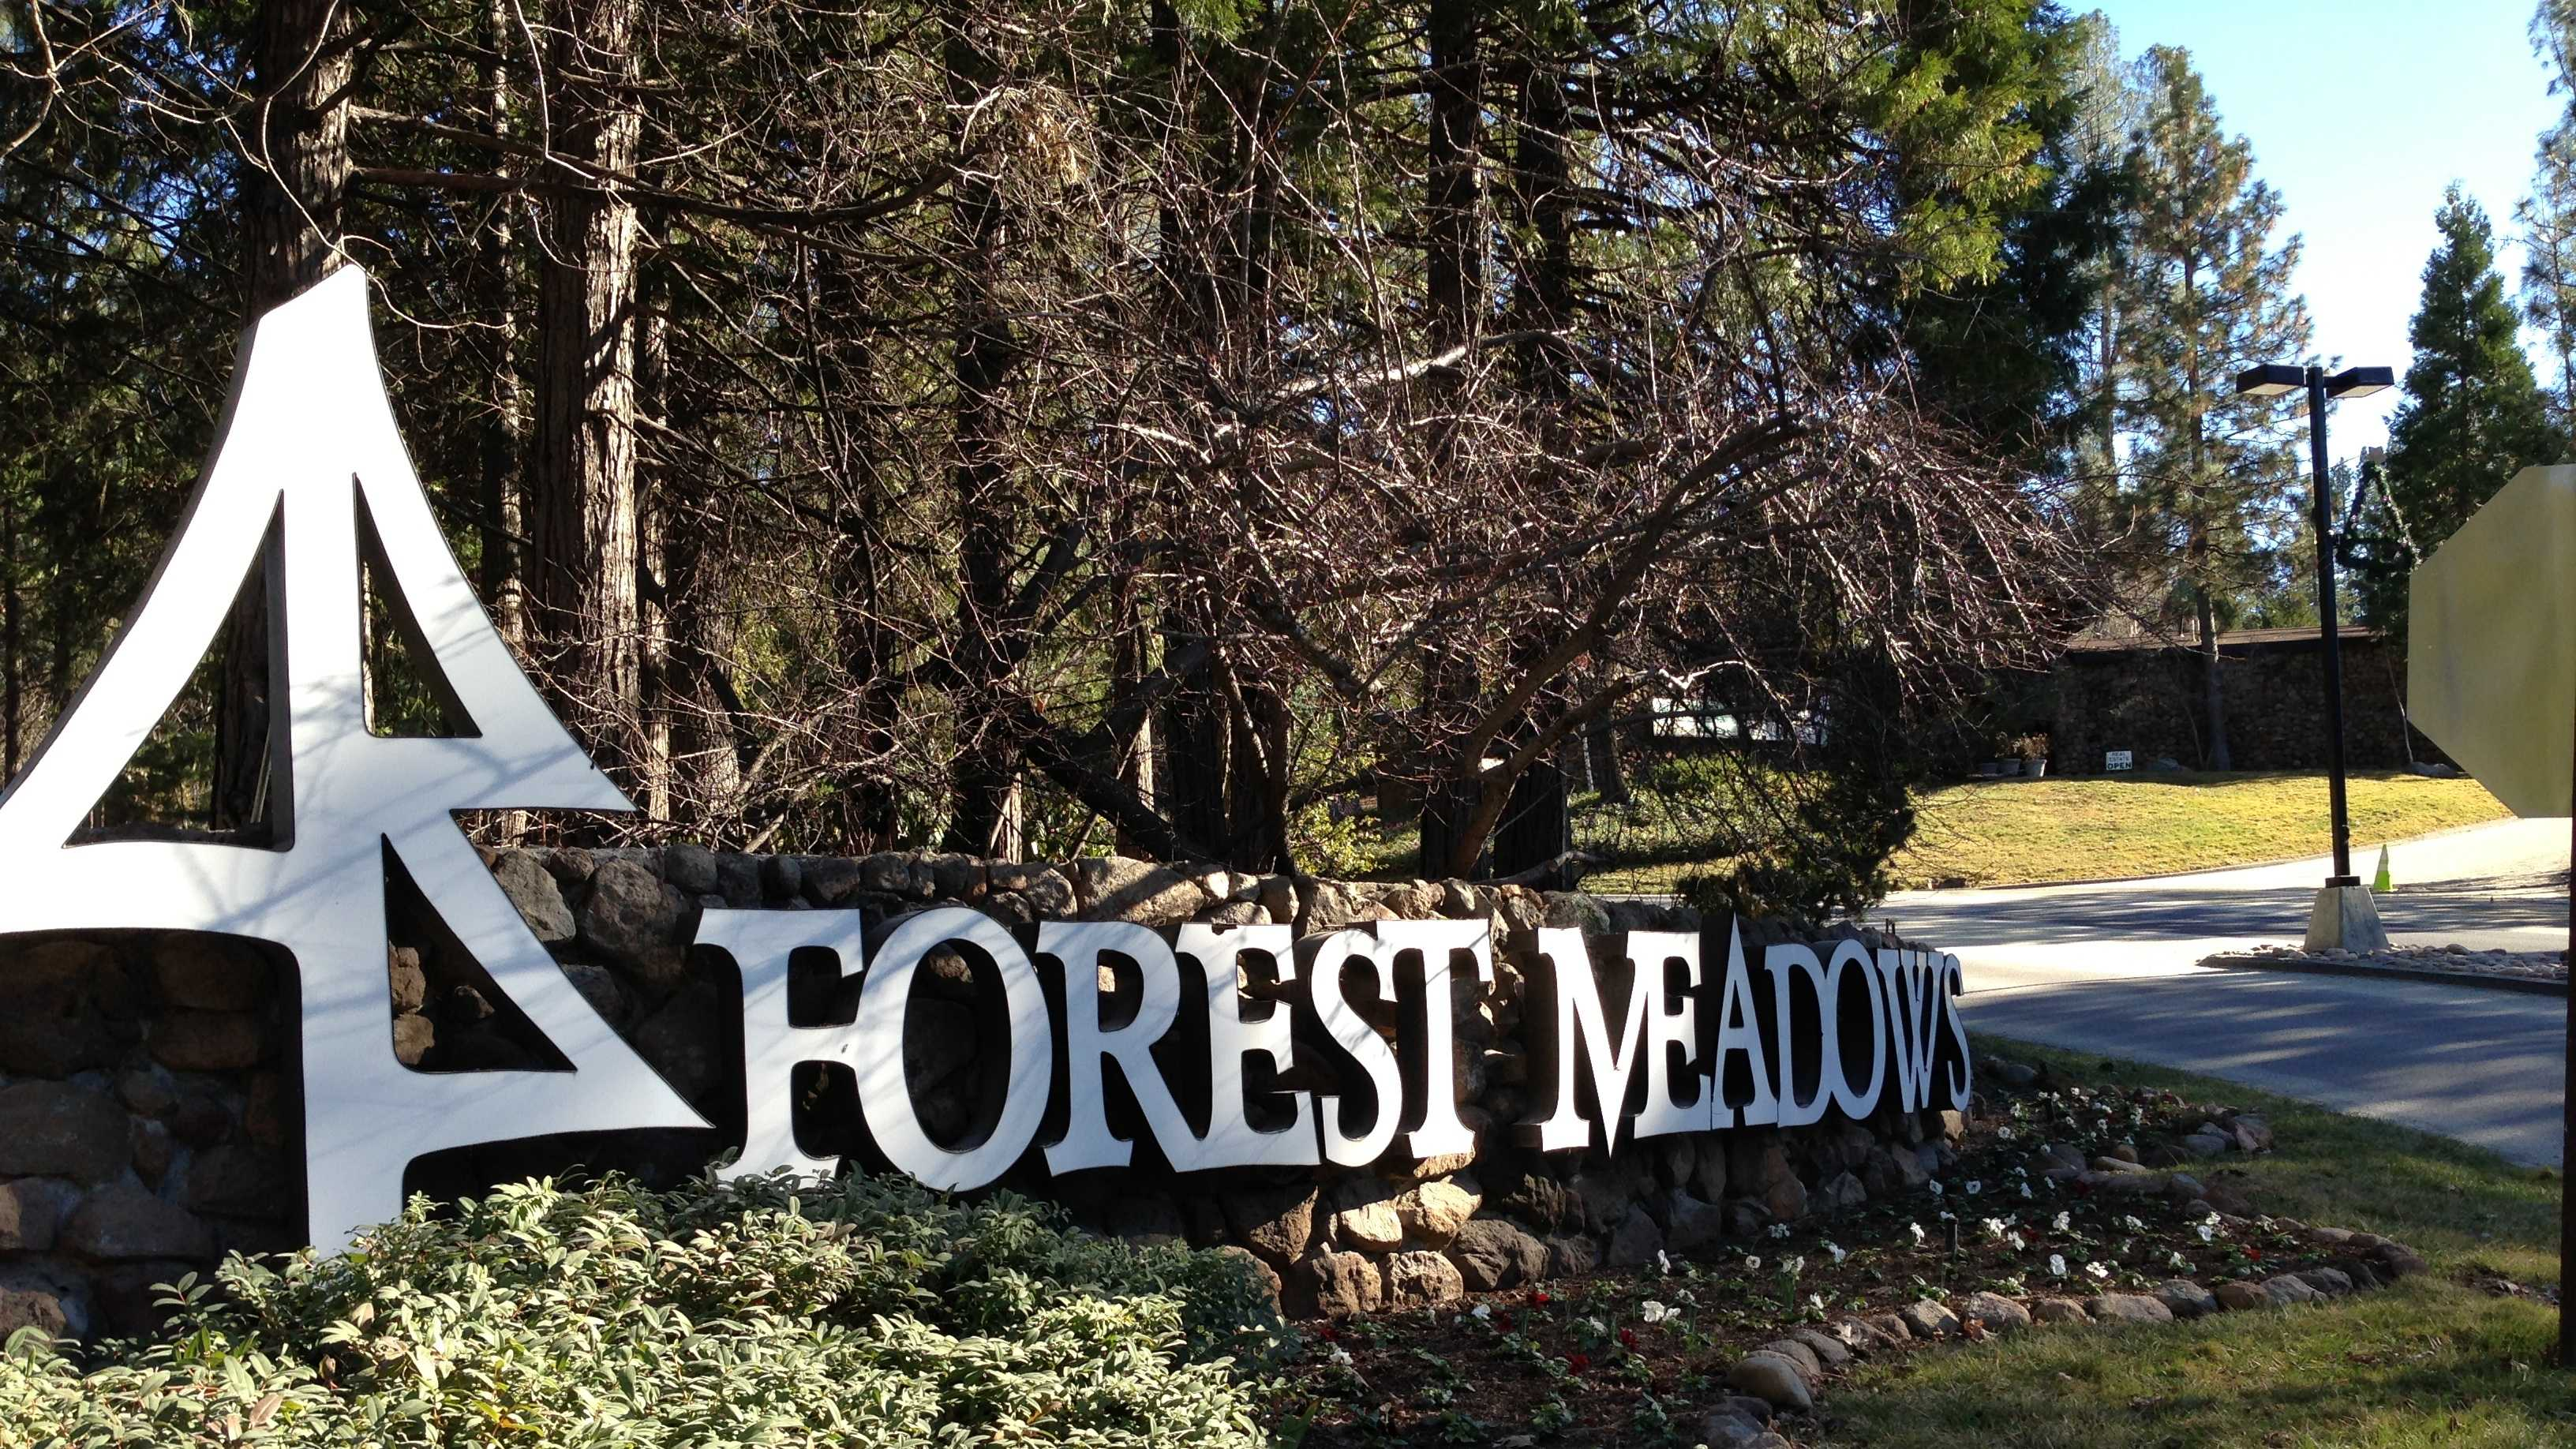 Forest Meadows is a gated, private community in Murphys.